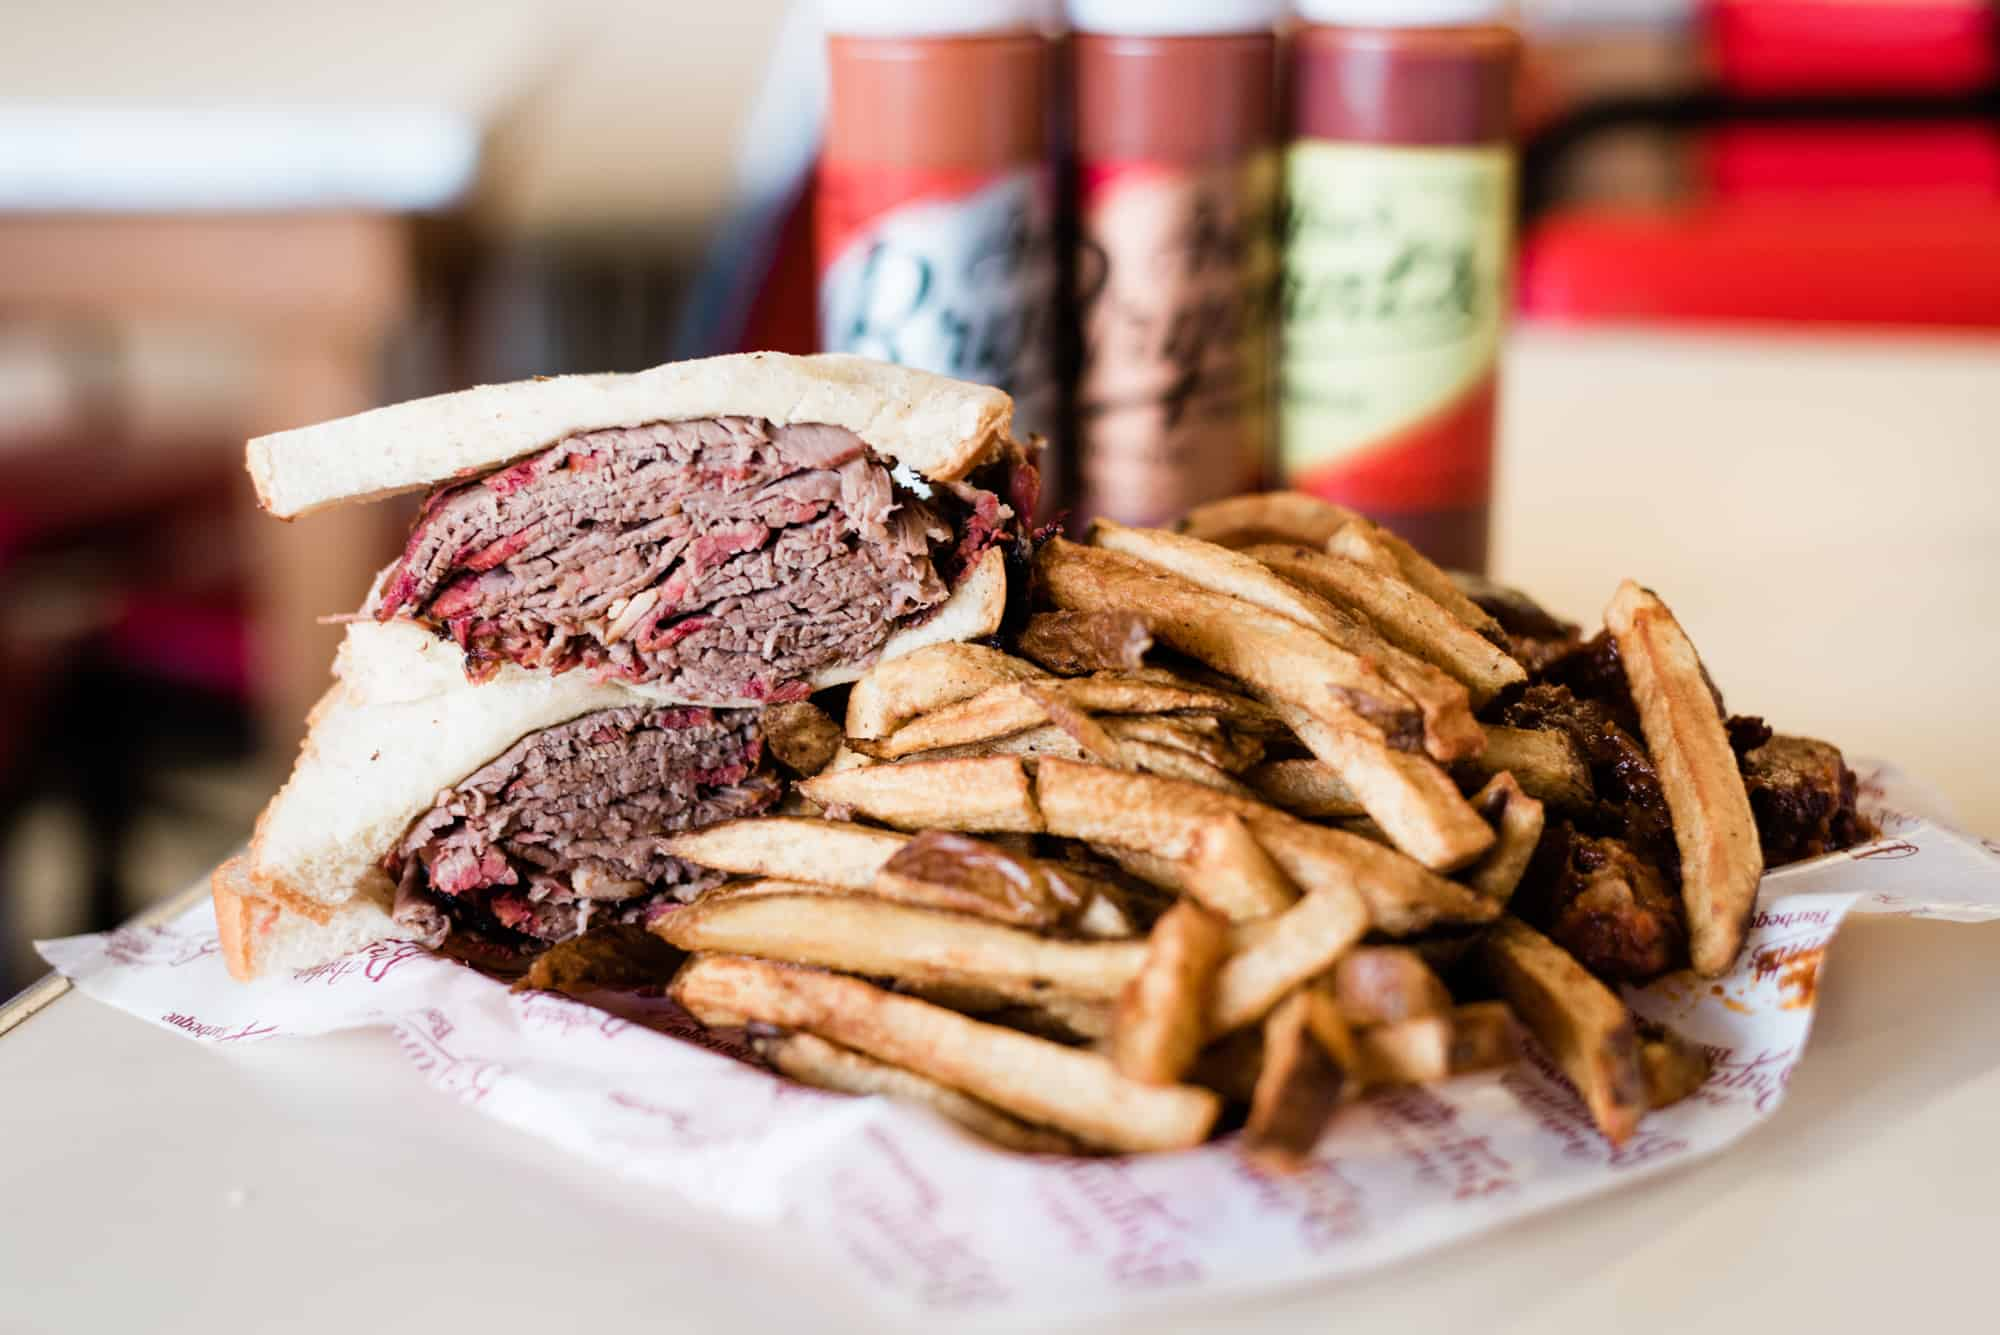 Kansas City is a mecca for barbecue fanatics. If you're visiting Kansas City, here's the top 5 Kansas City barbecue restaurants you won't want to miss.